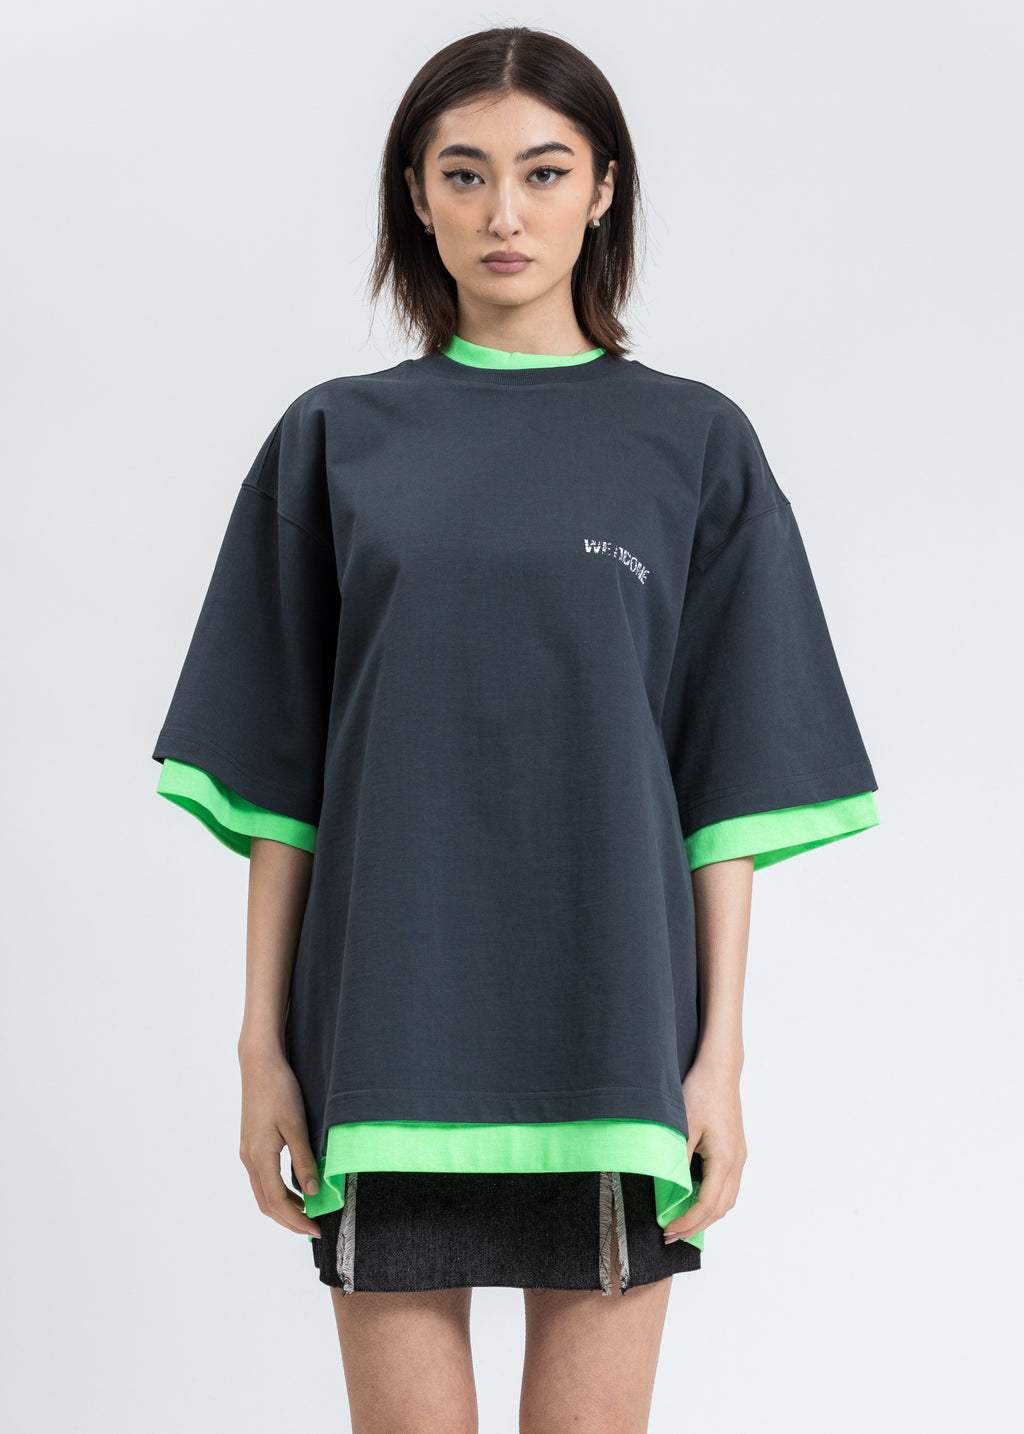 Charcoal And Neon Green Reversible Gig T-shirt